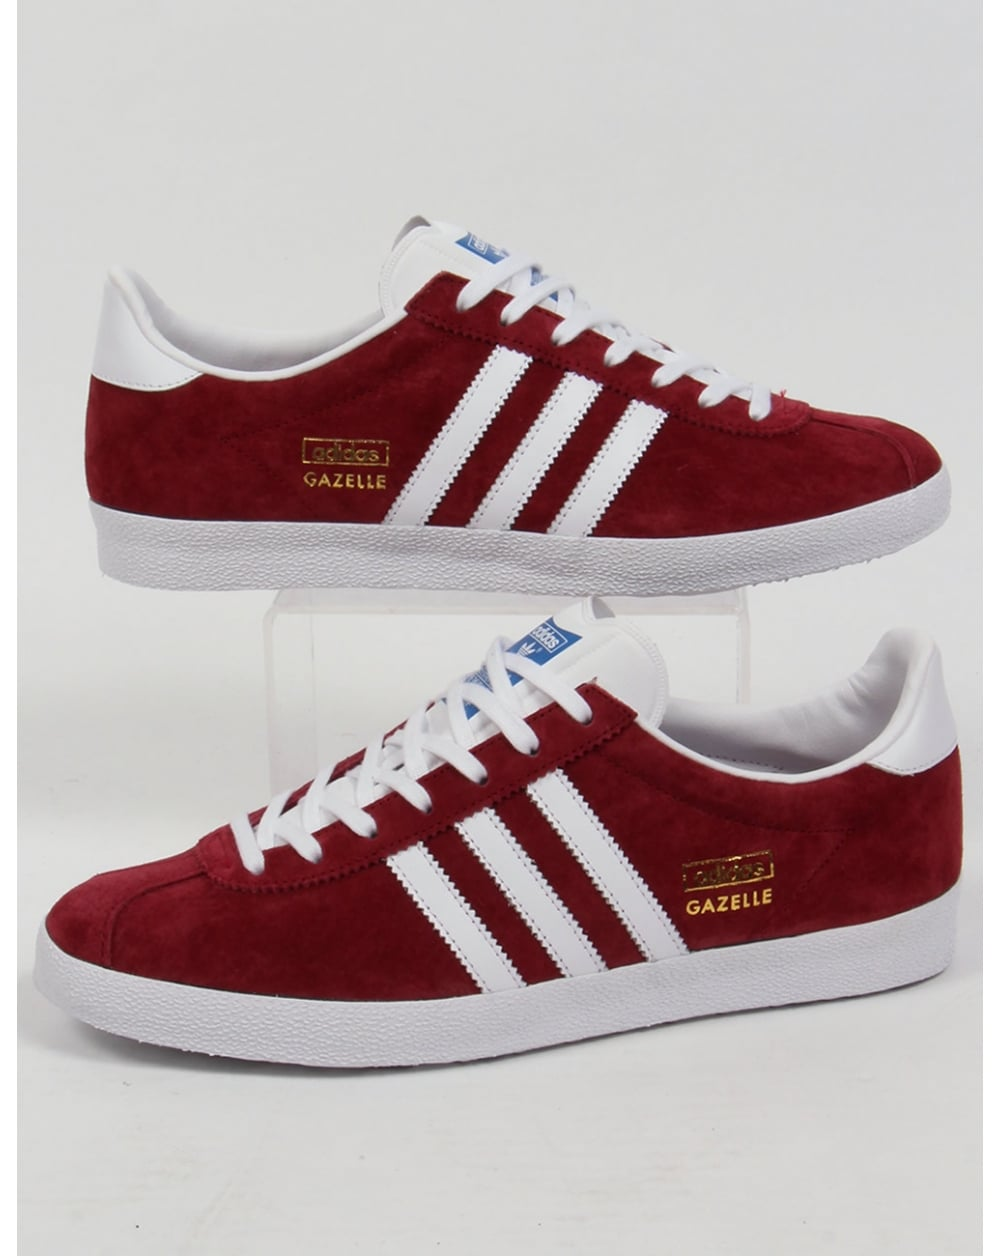 Adidas Gazelle Og Leather Burgundy